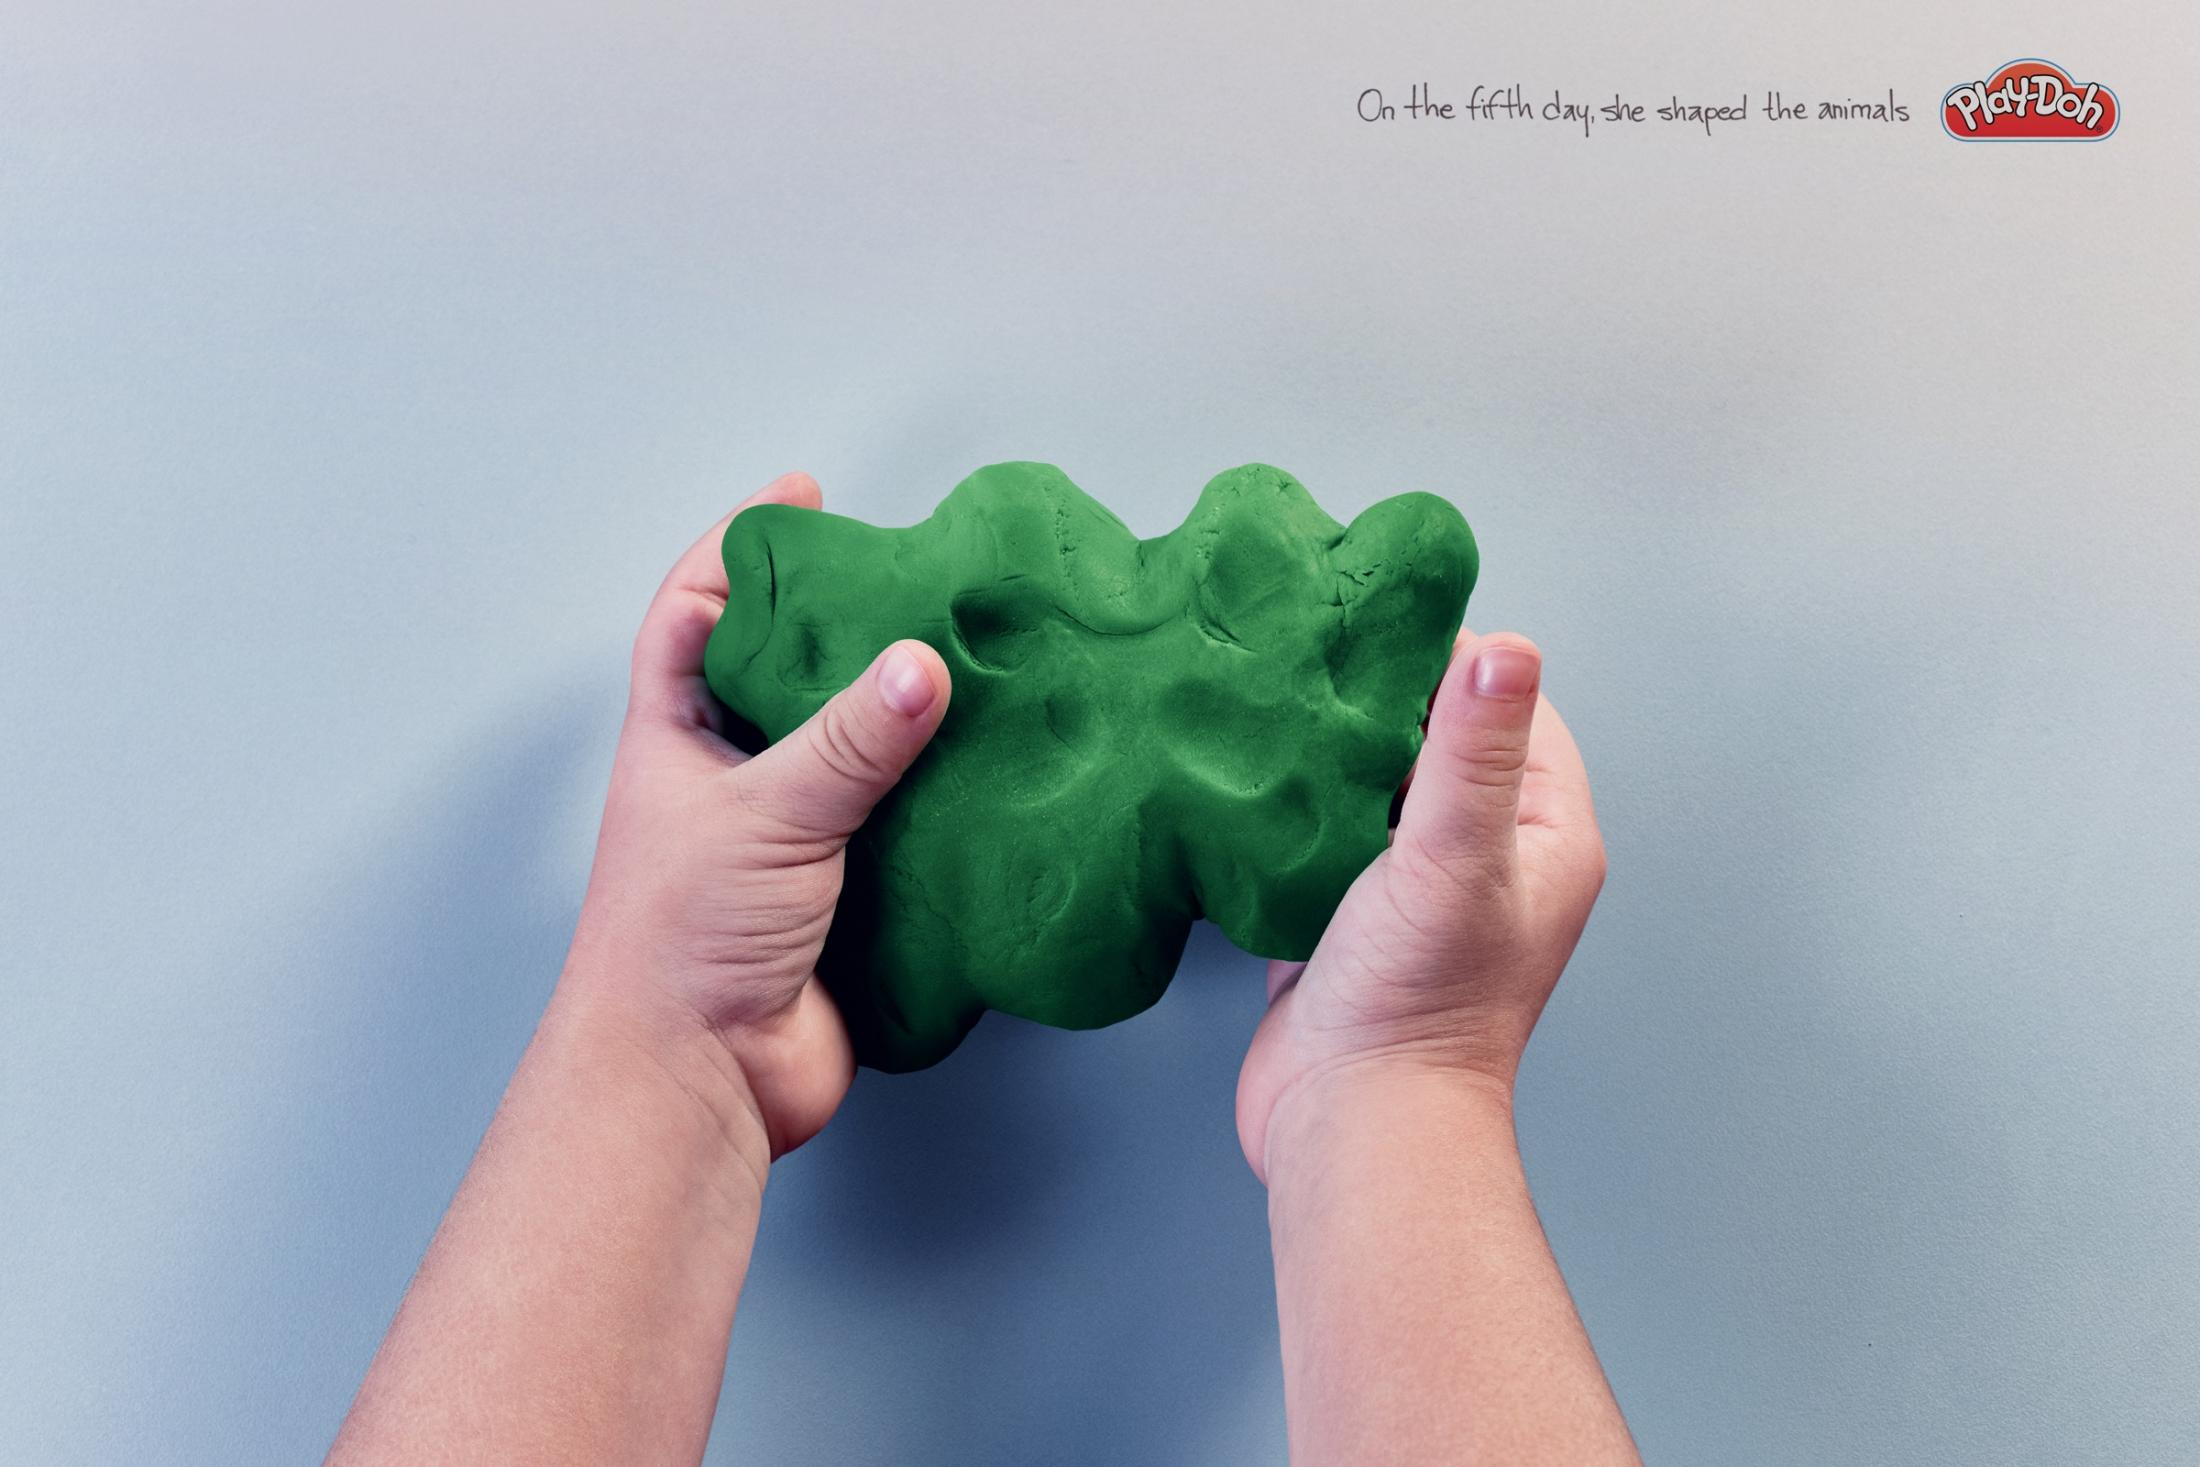 Play-Doh Print Ad - The fifth day